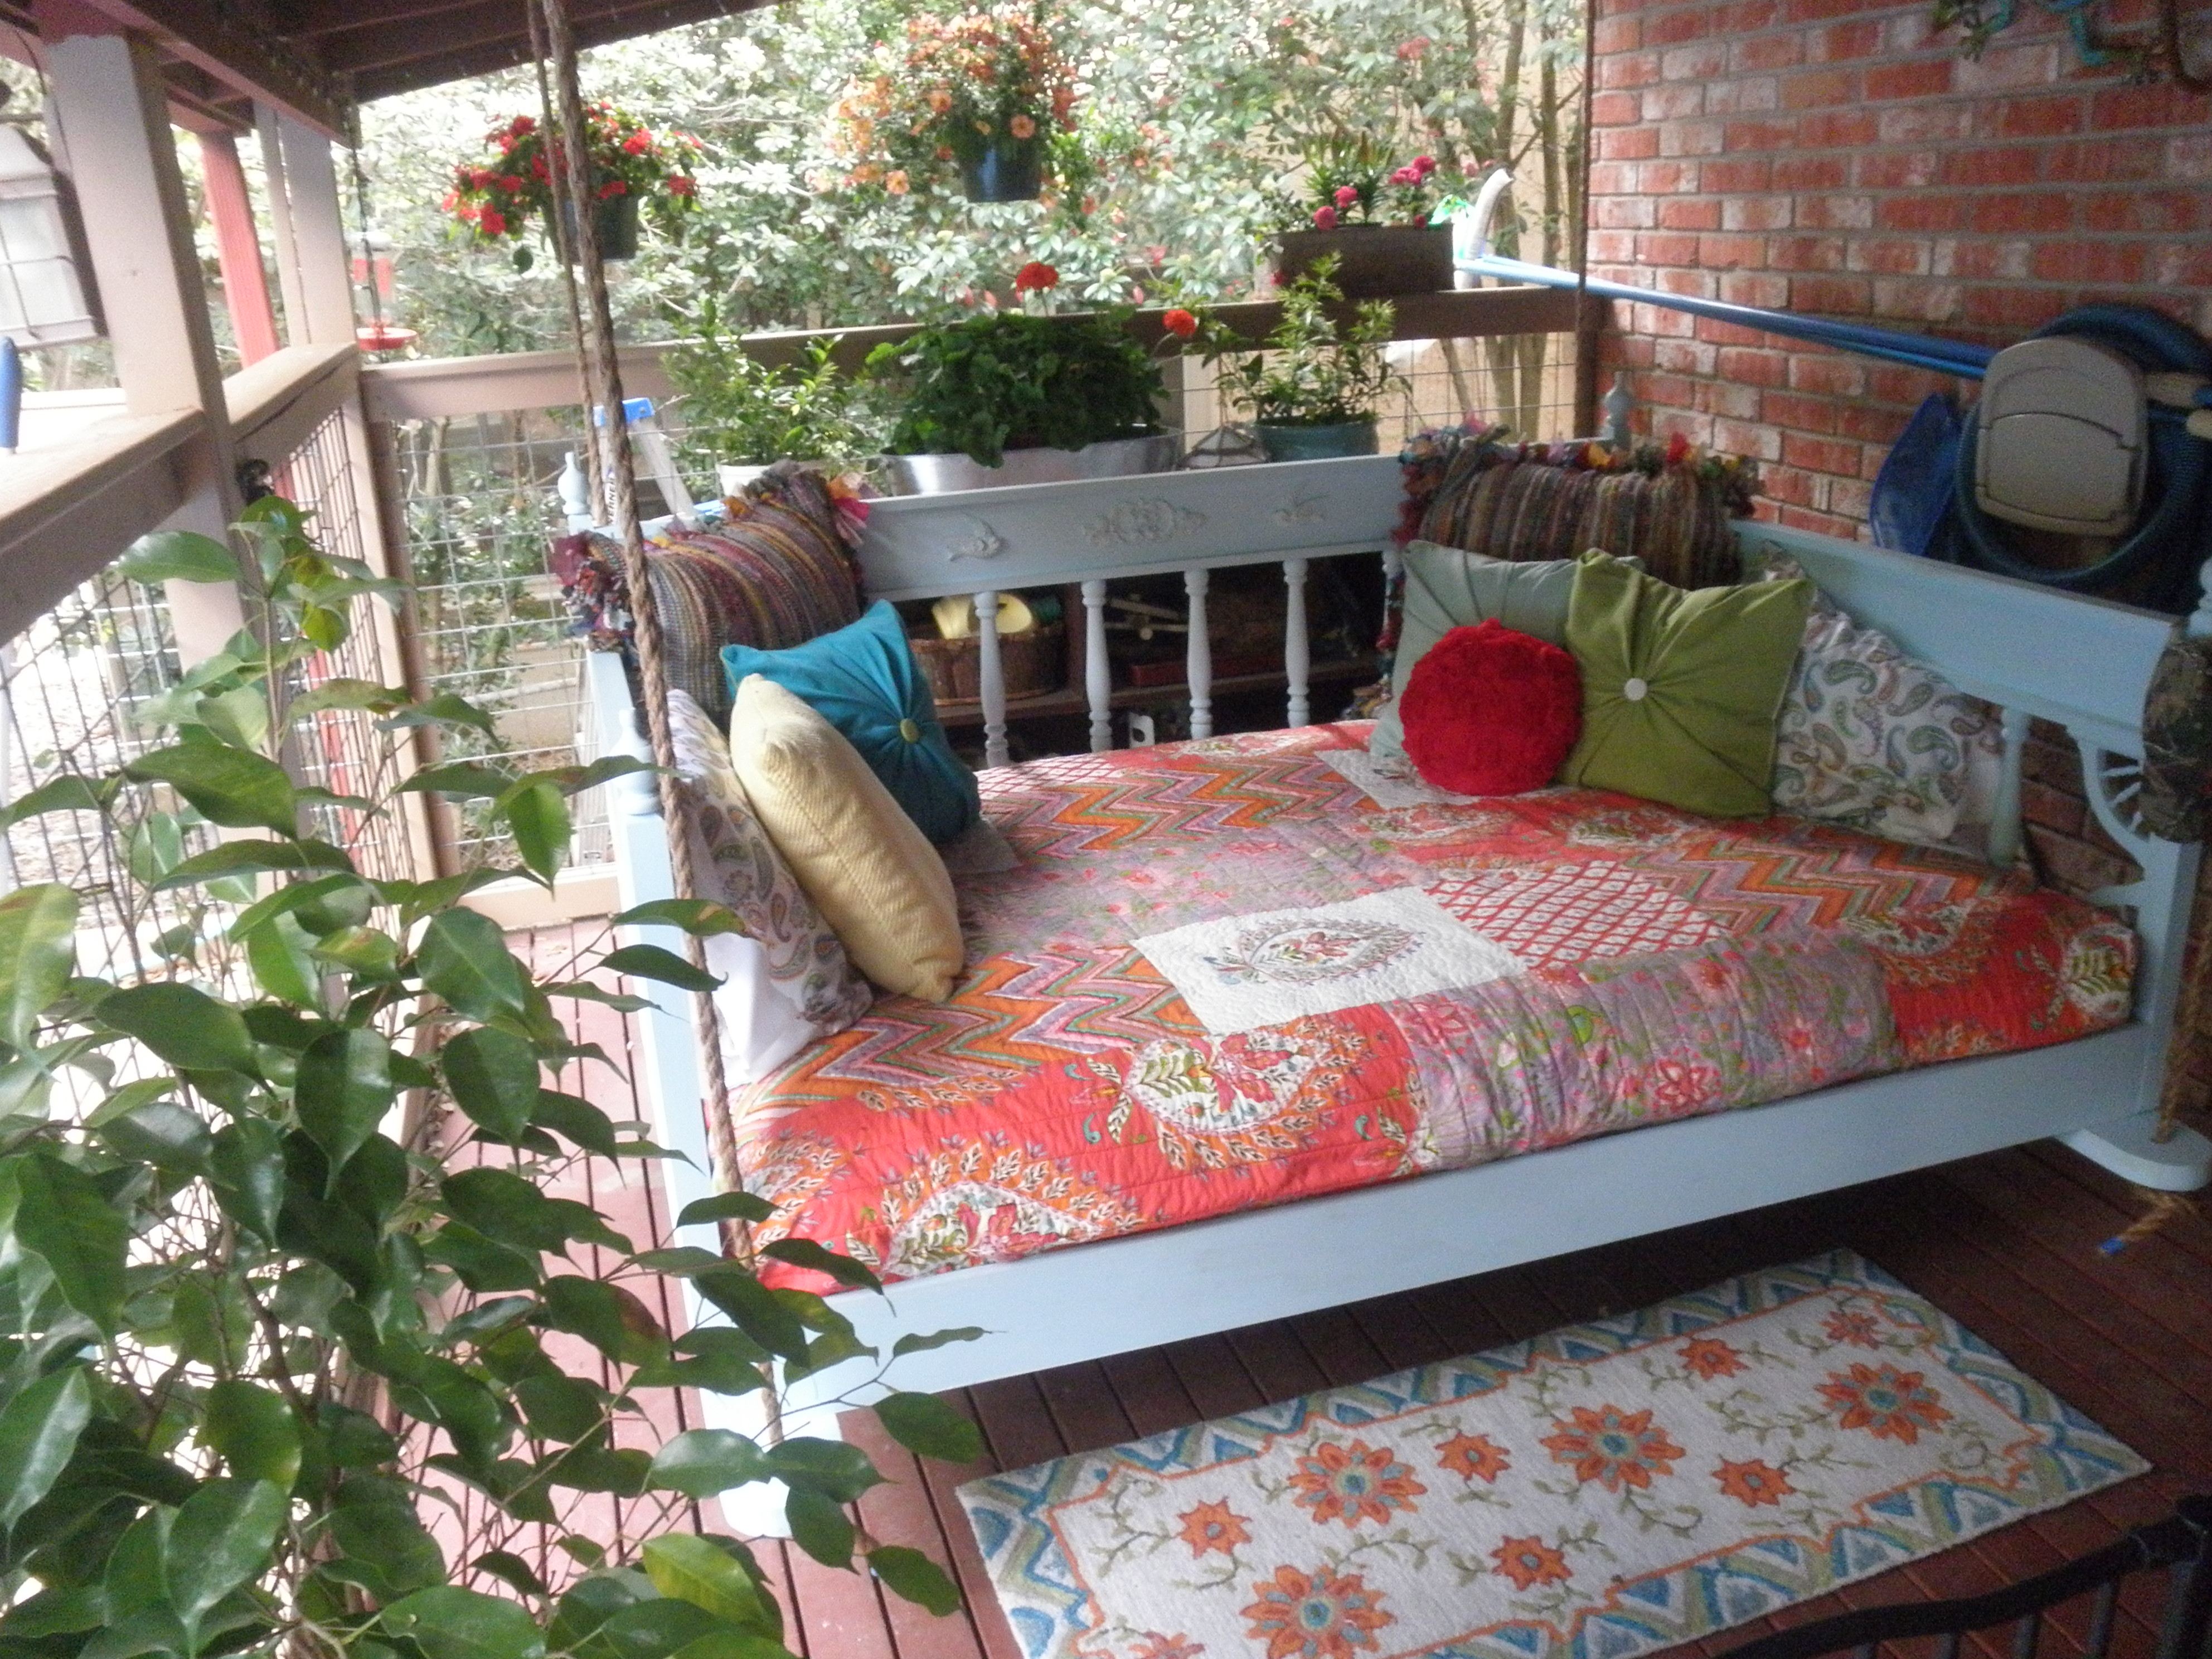 Our Porch Swing Bed Ana White